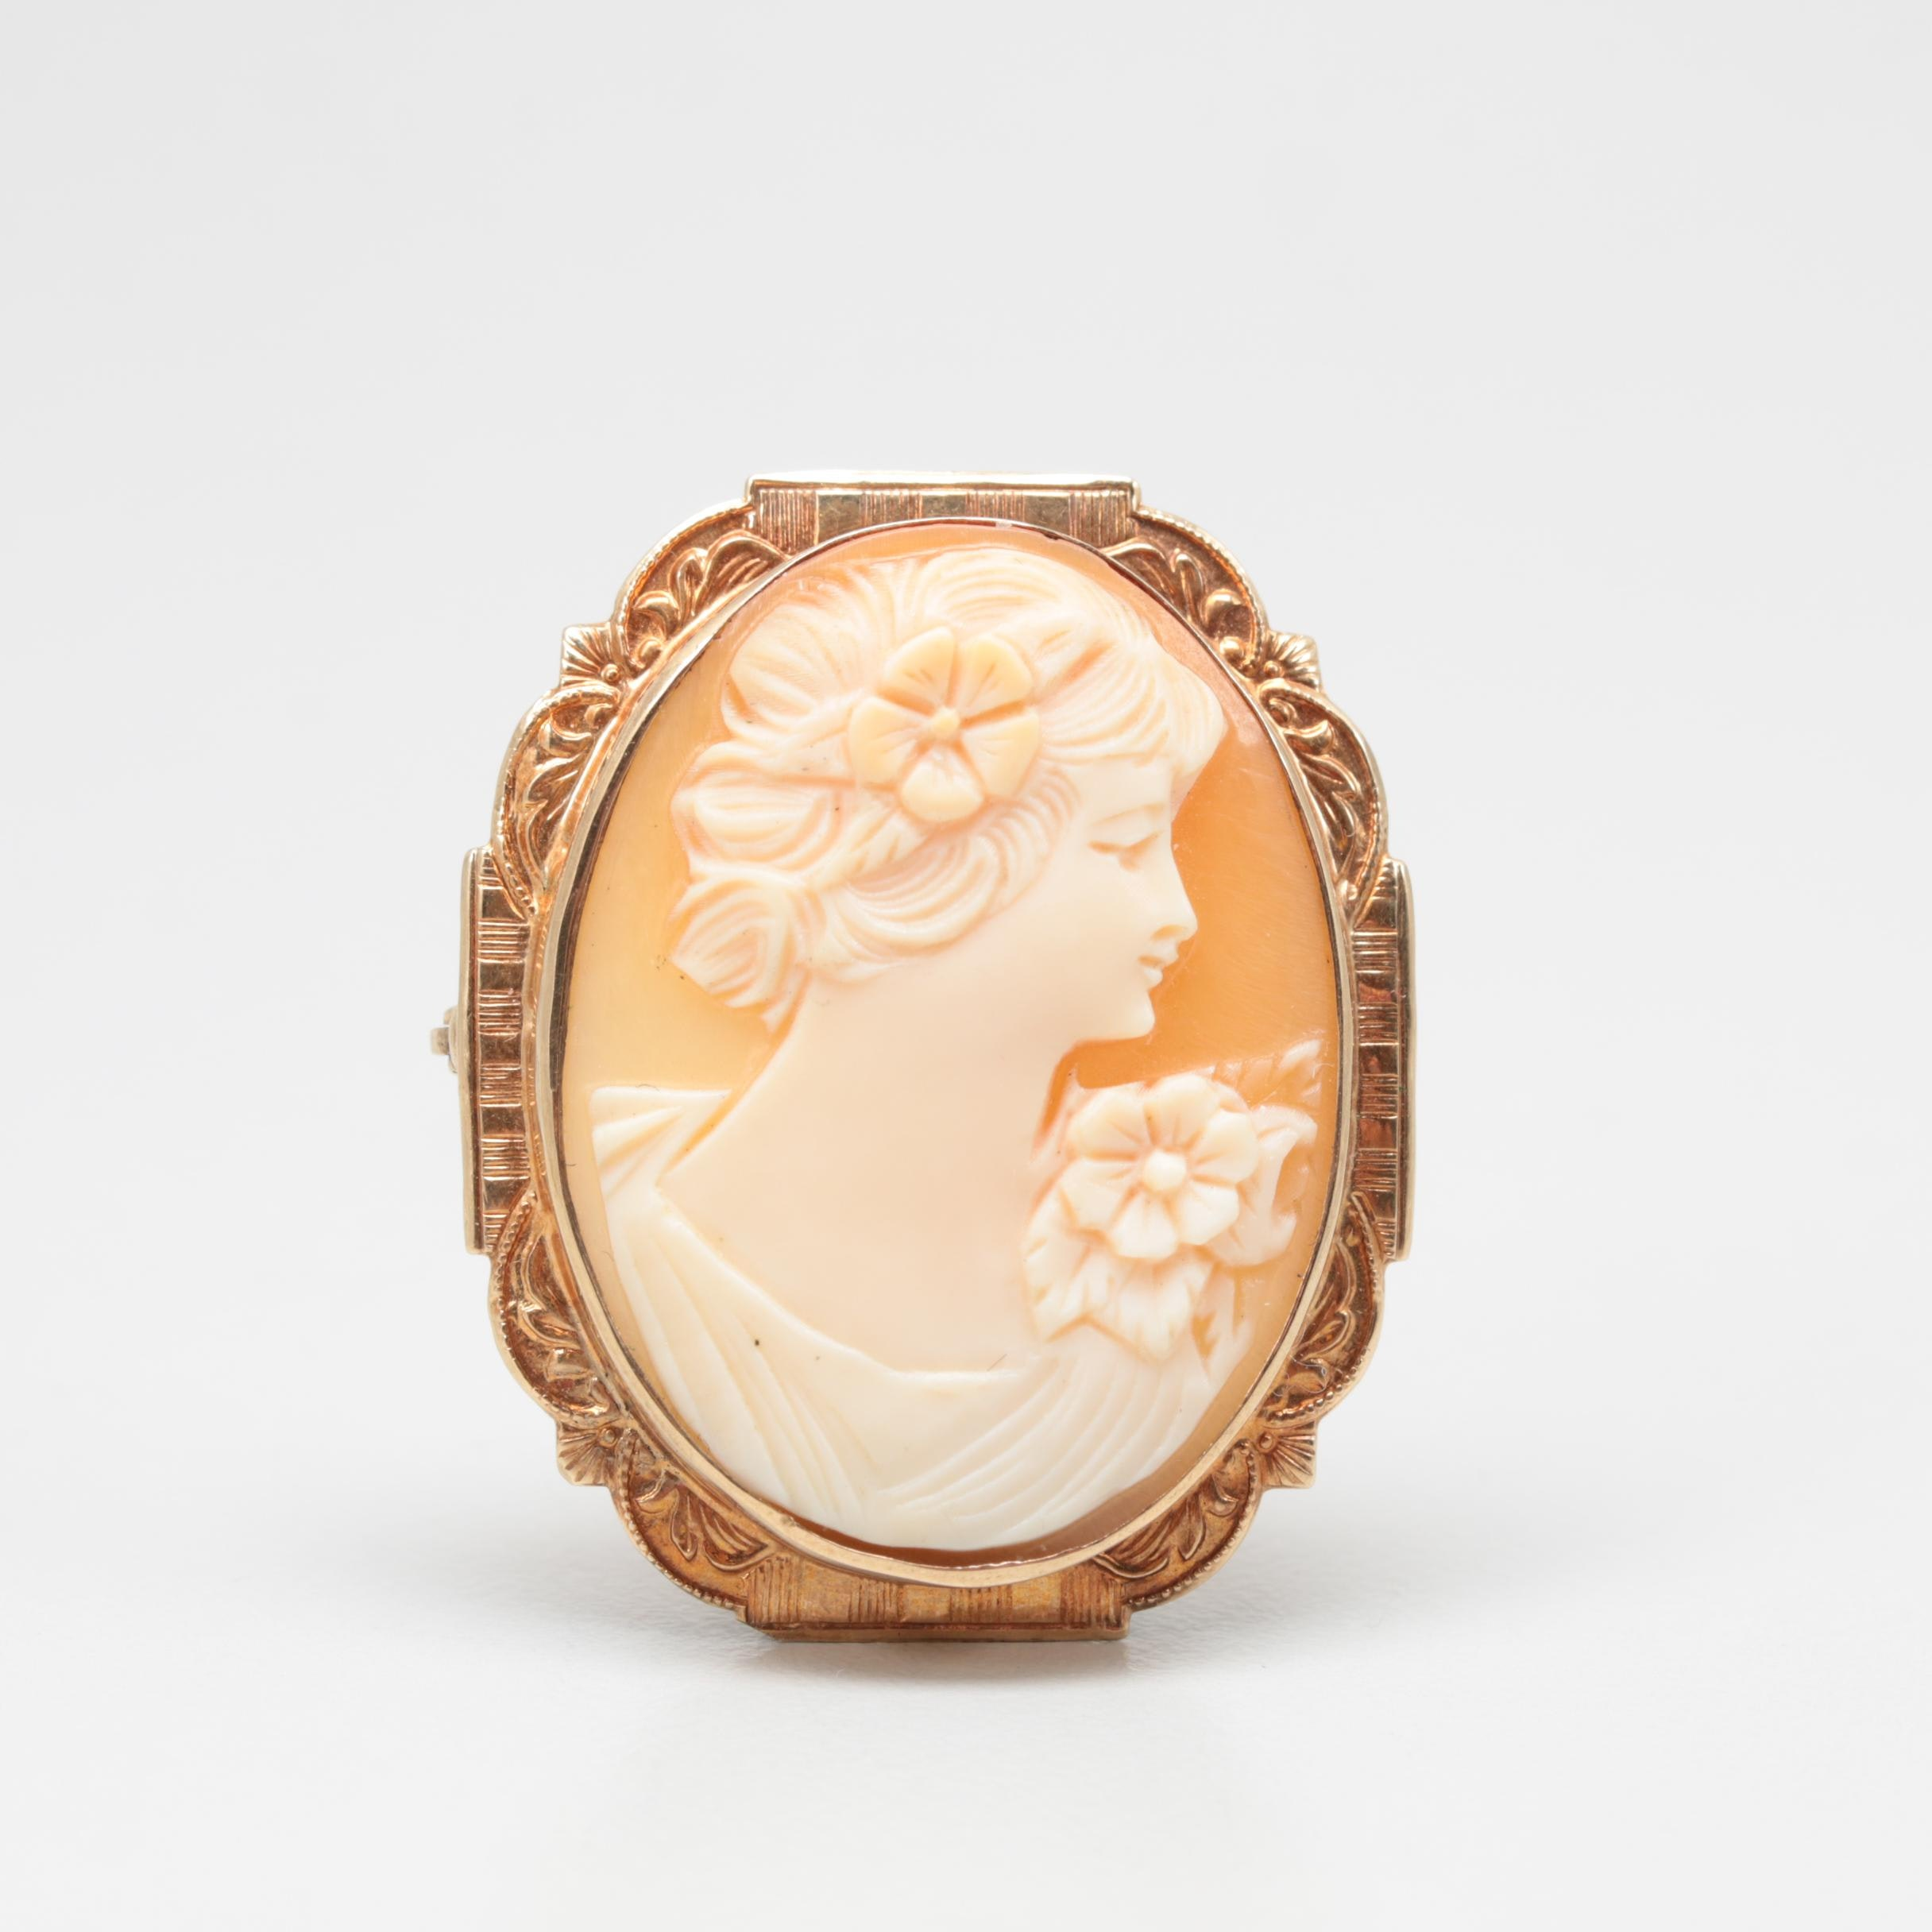 Vintage 10K Yellow Gold Shell Cameo Brooch